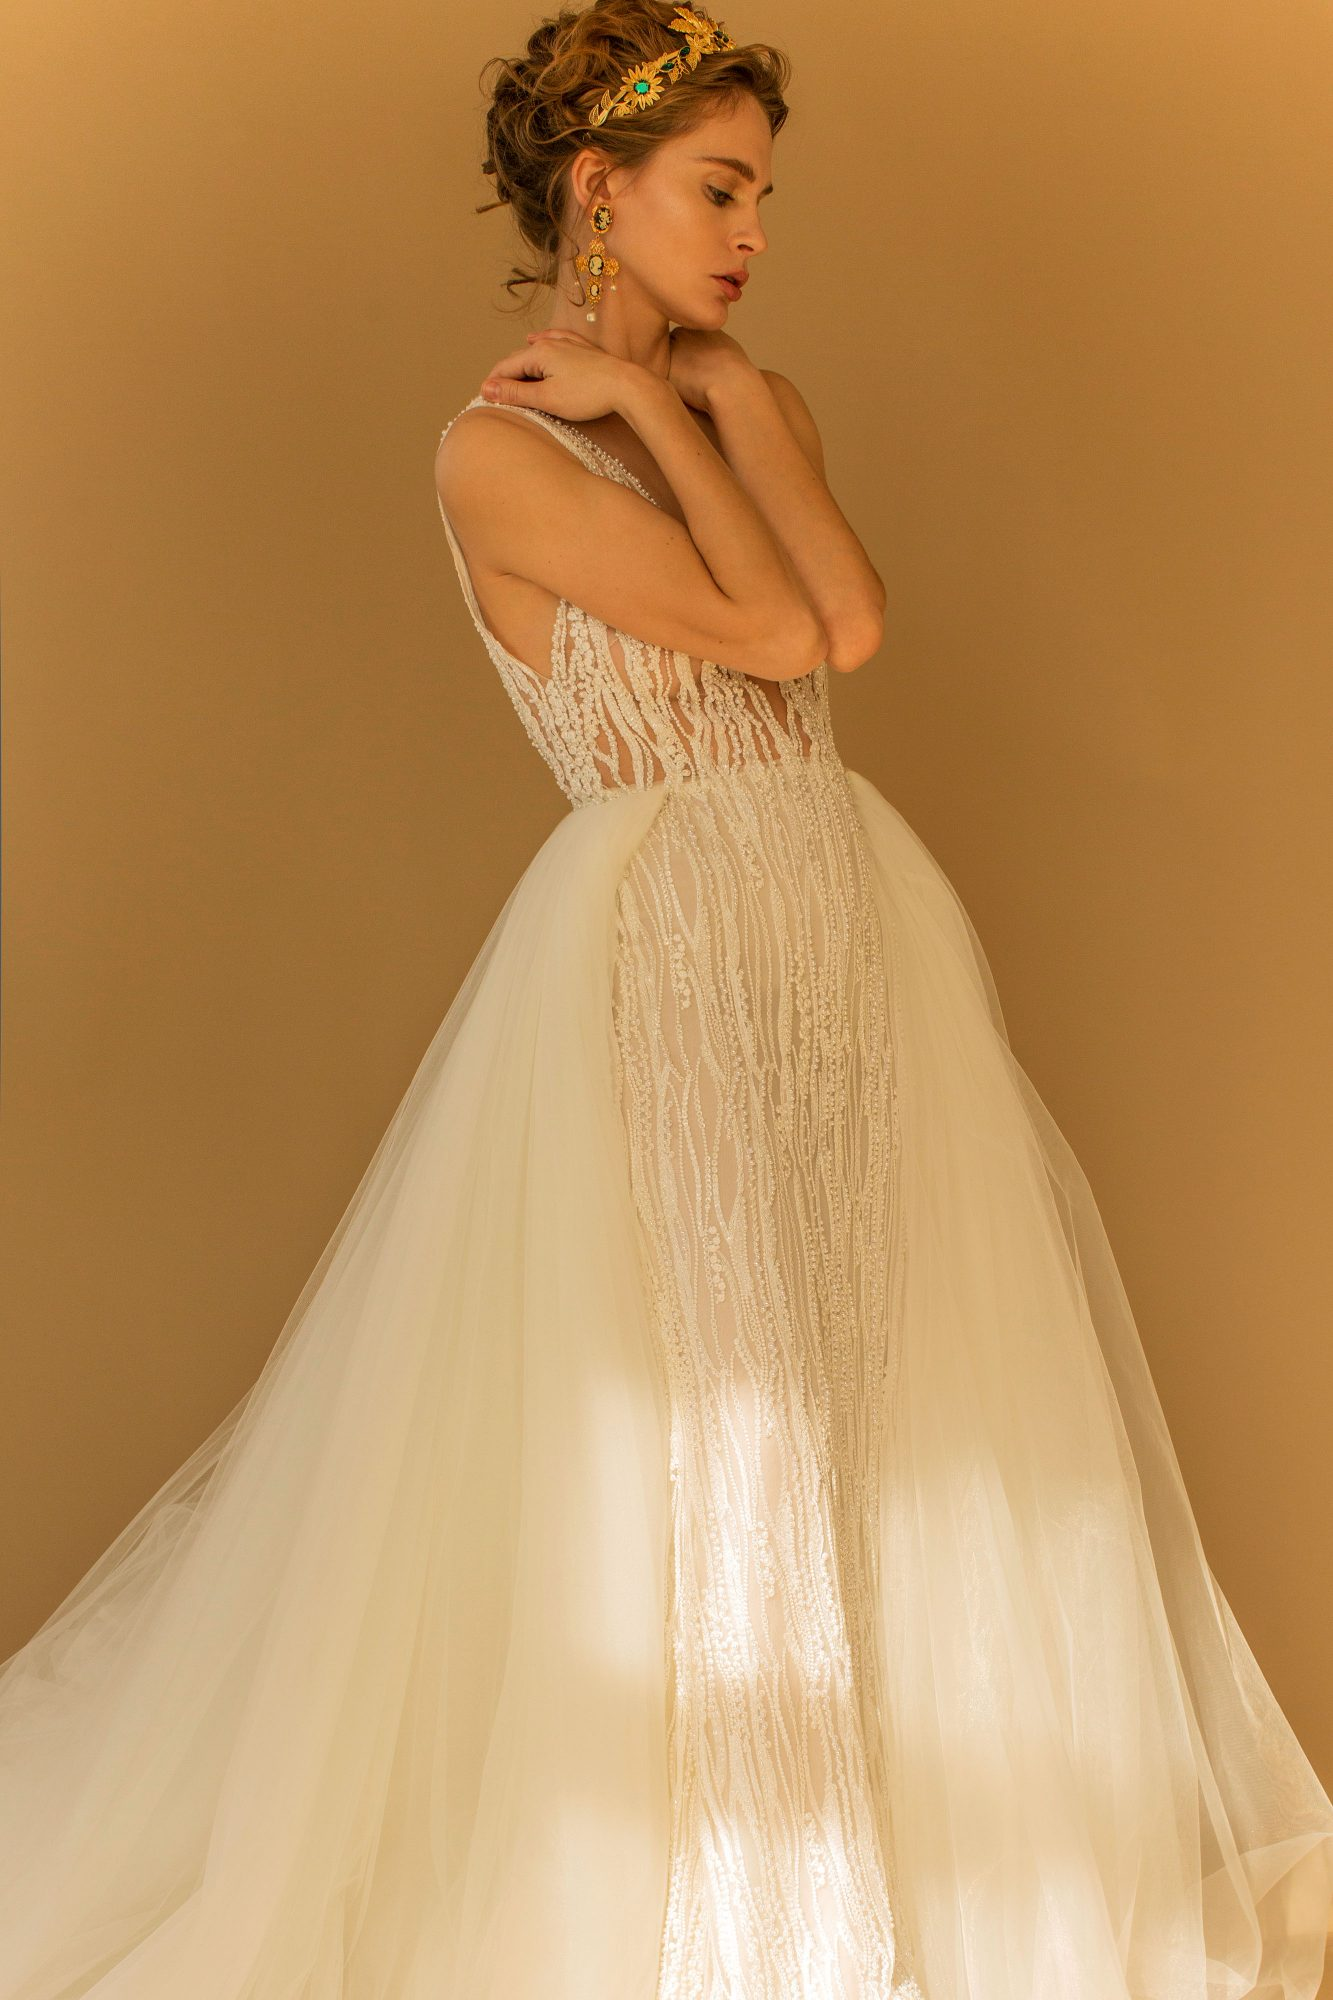 francesca miranda wedding dress fall 2018 tulle sleeveless embellished